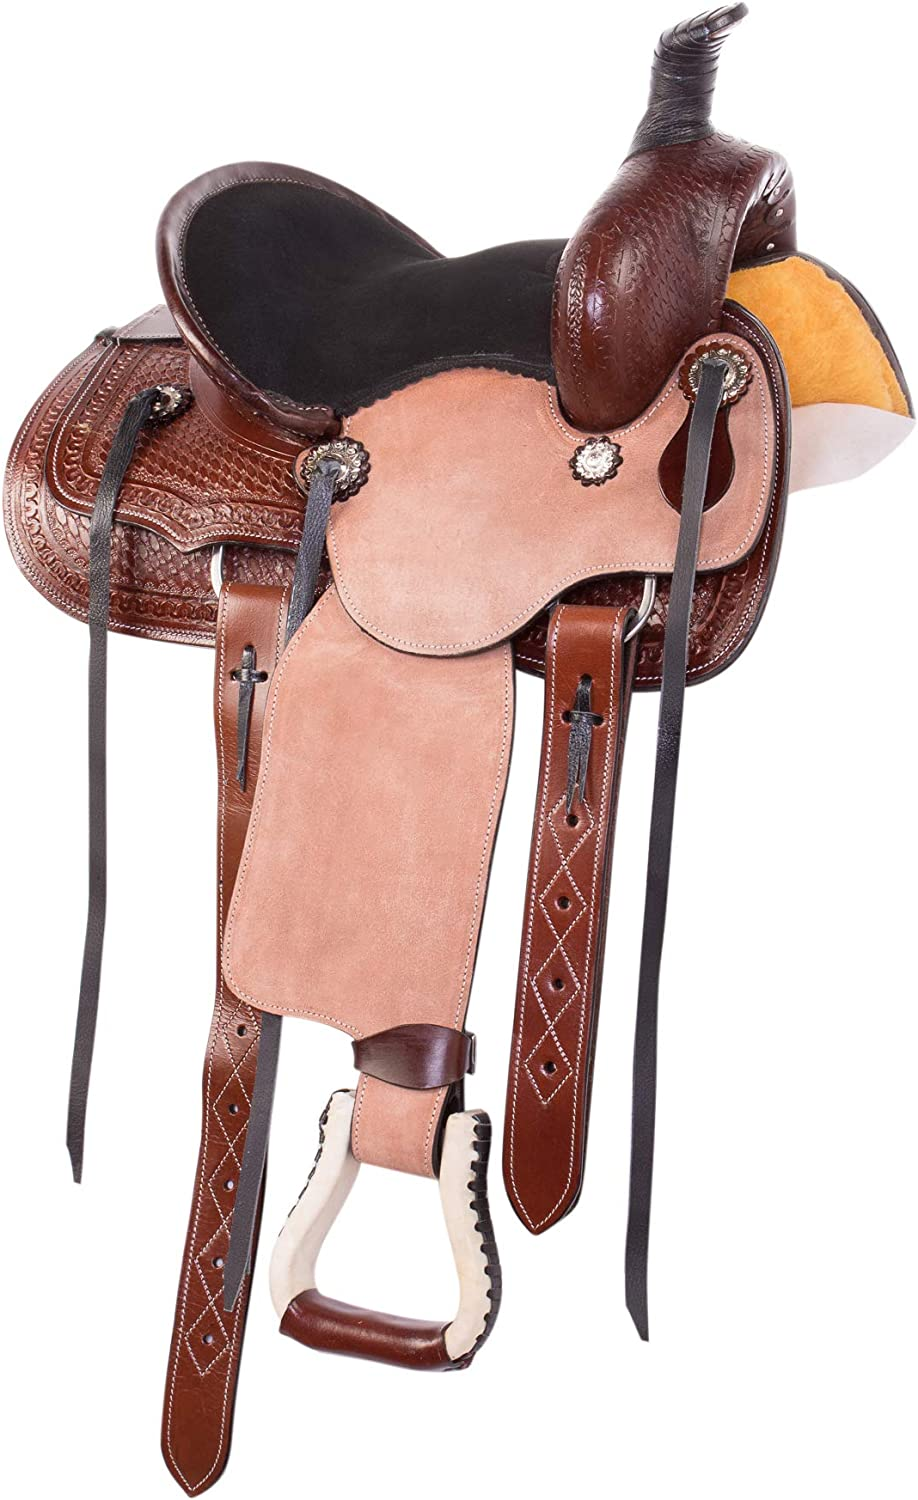 12 13 in WESTERN TOOLED LEATHER KIDS HORSE SADDLE PLEASURE TRAIL ROPING TACK